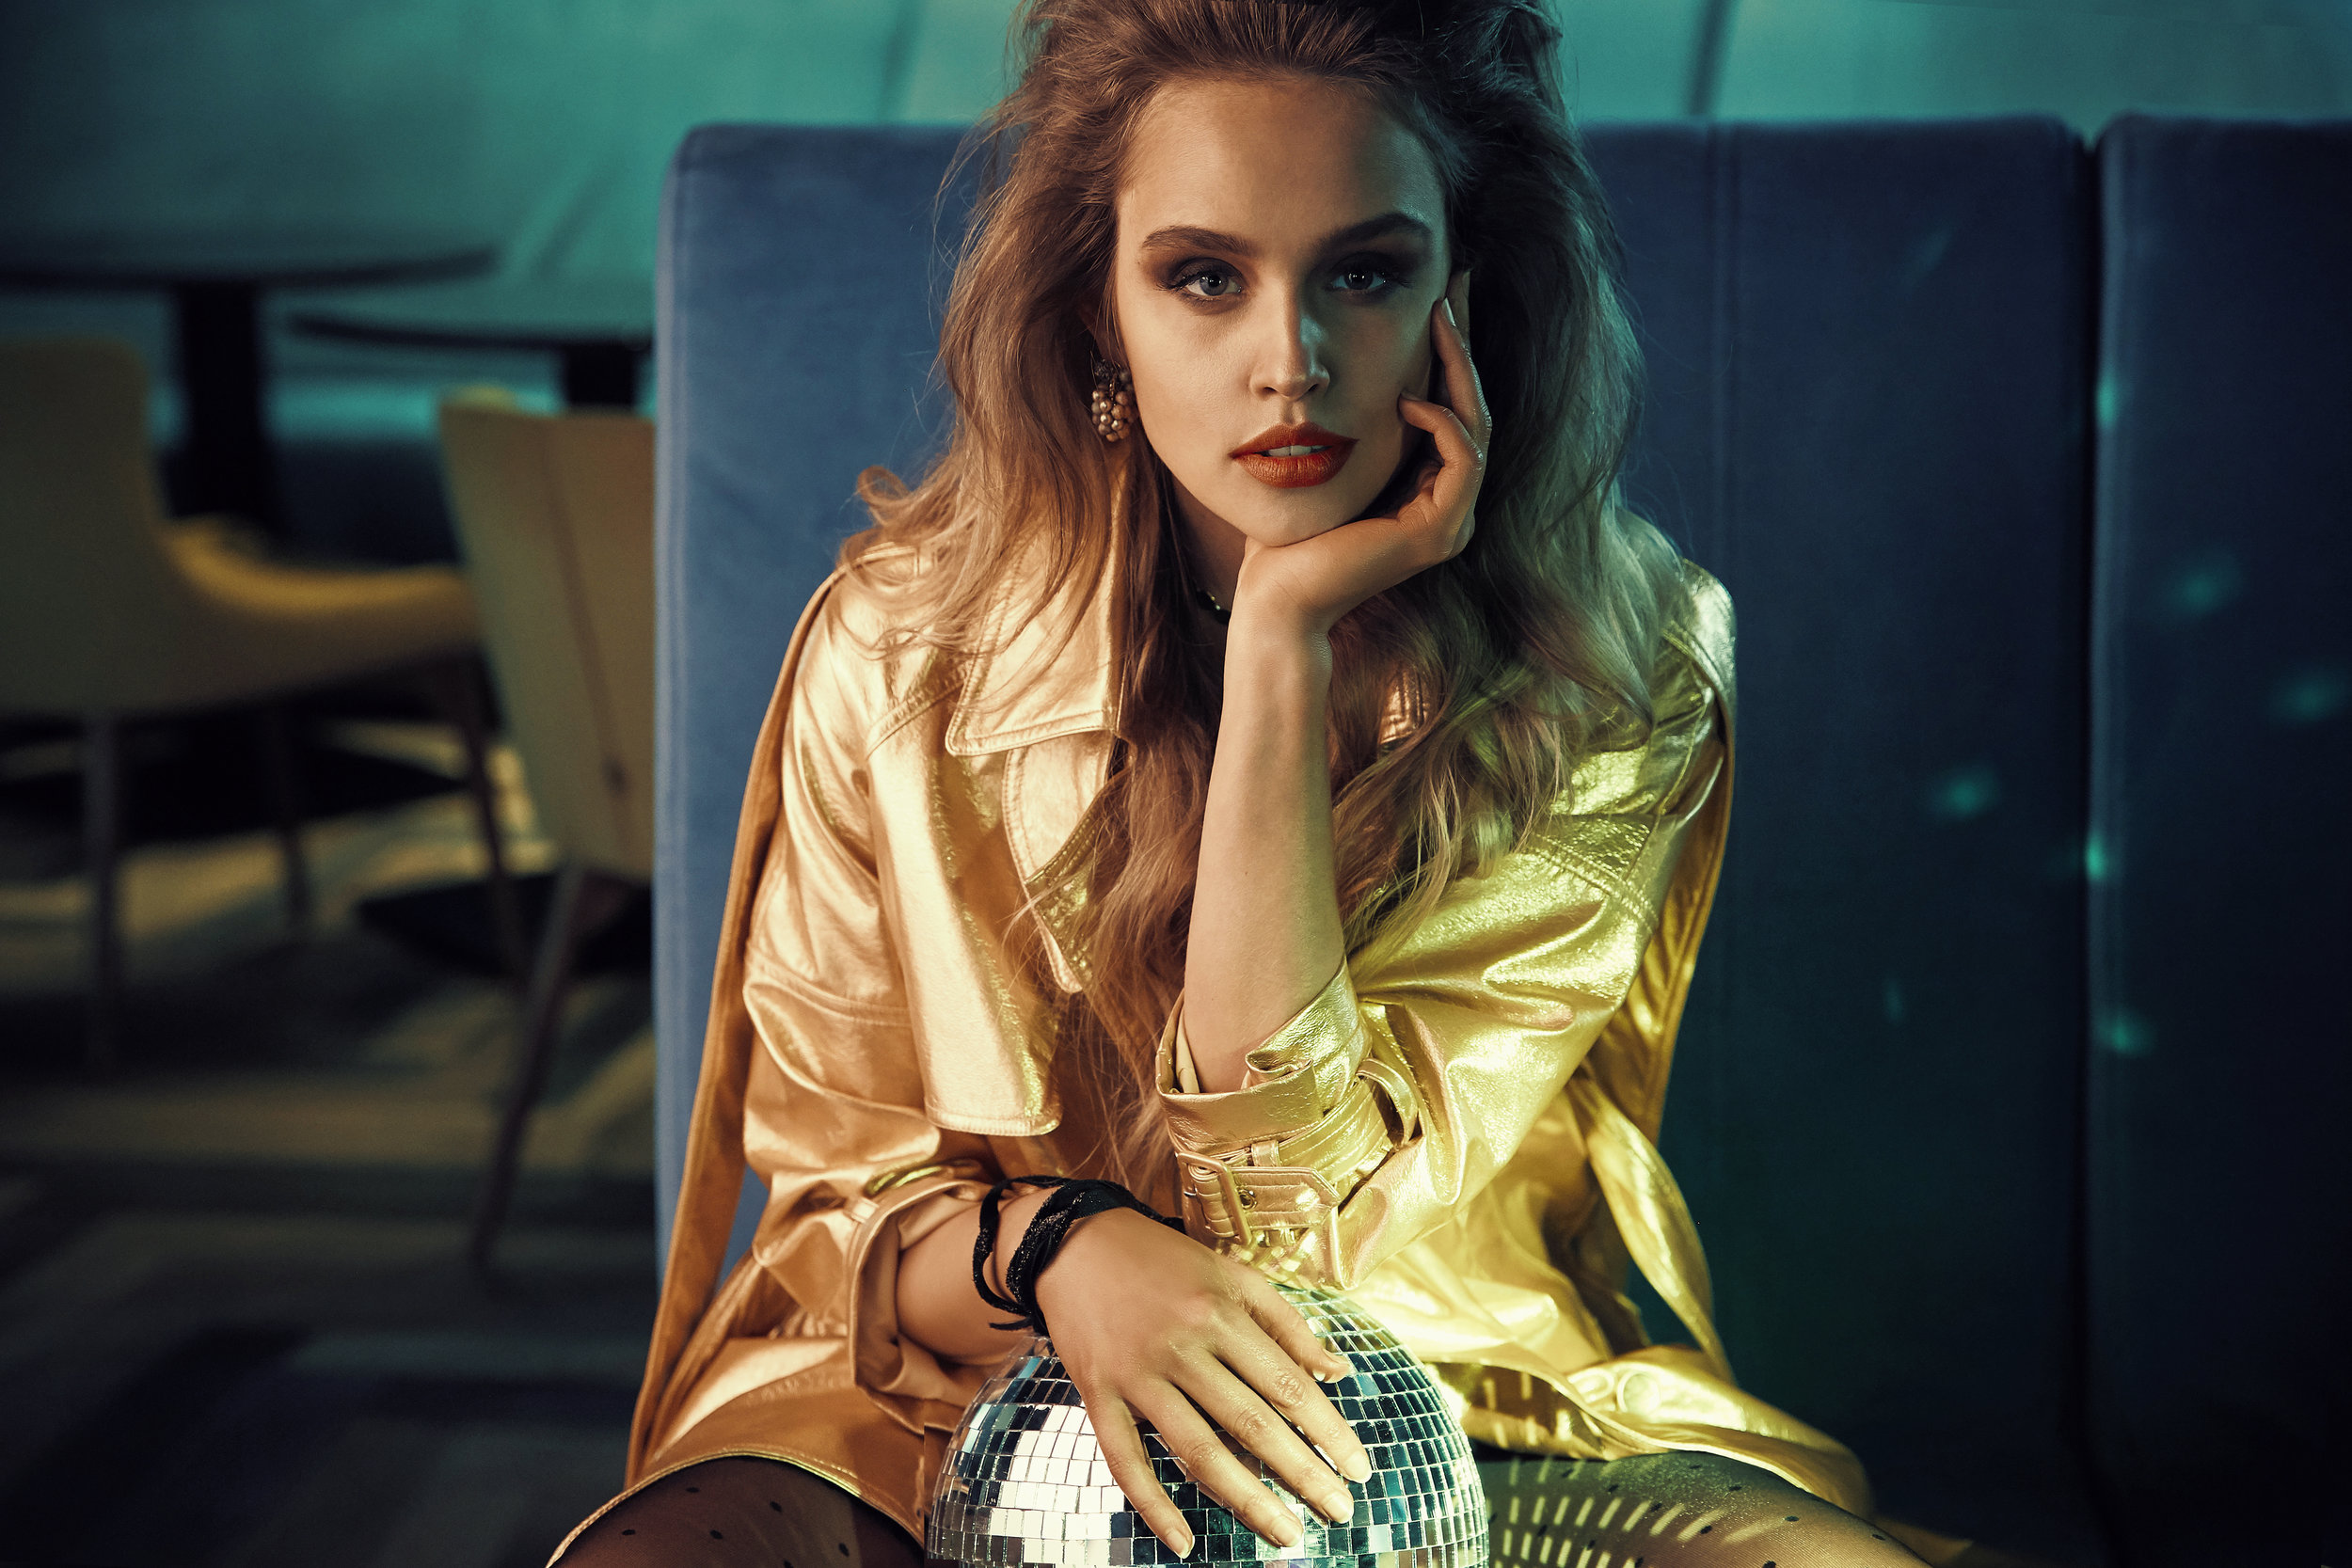 Luxury portrait of beautiful young woman in gold trench coat, sitting on blue couch with disco ball. Retro style